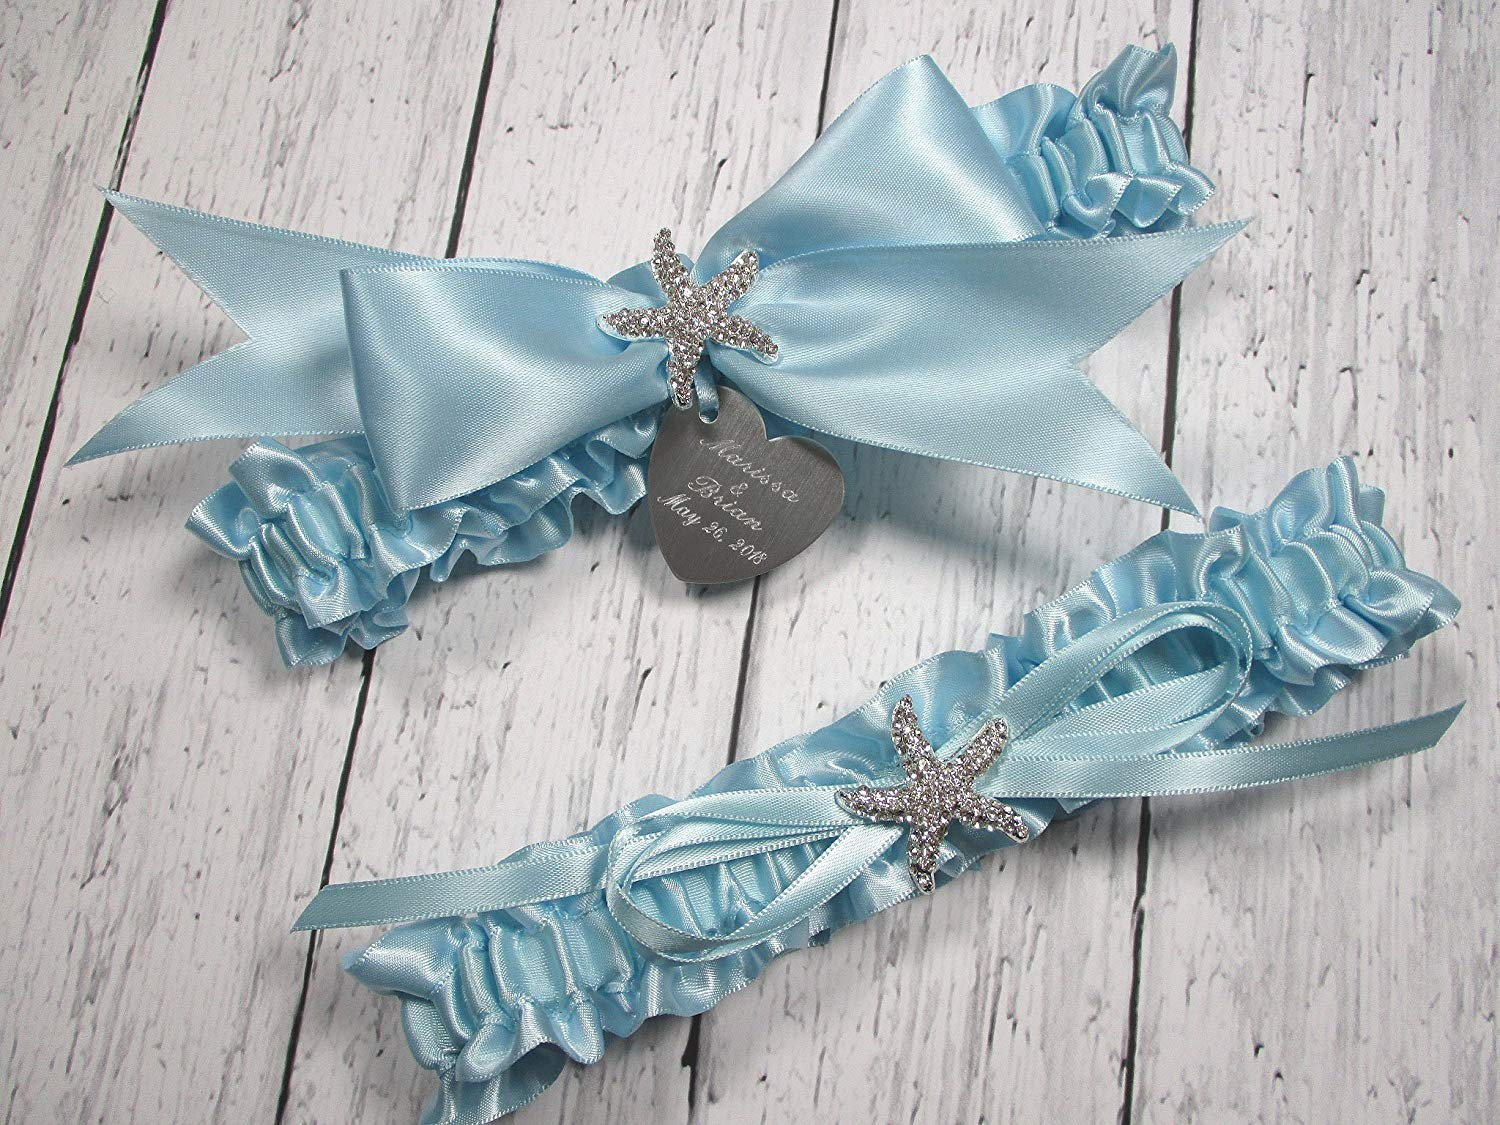 a75dc89bb Get Quotations · Beach Wedding Garter Set in Light Blue with Rhinestone  Starfish and Personalized Engraving